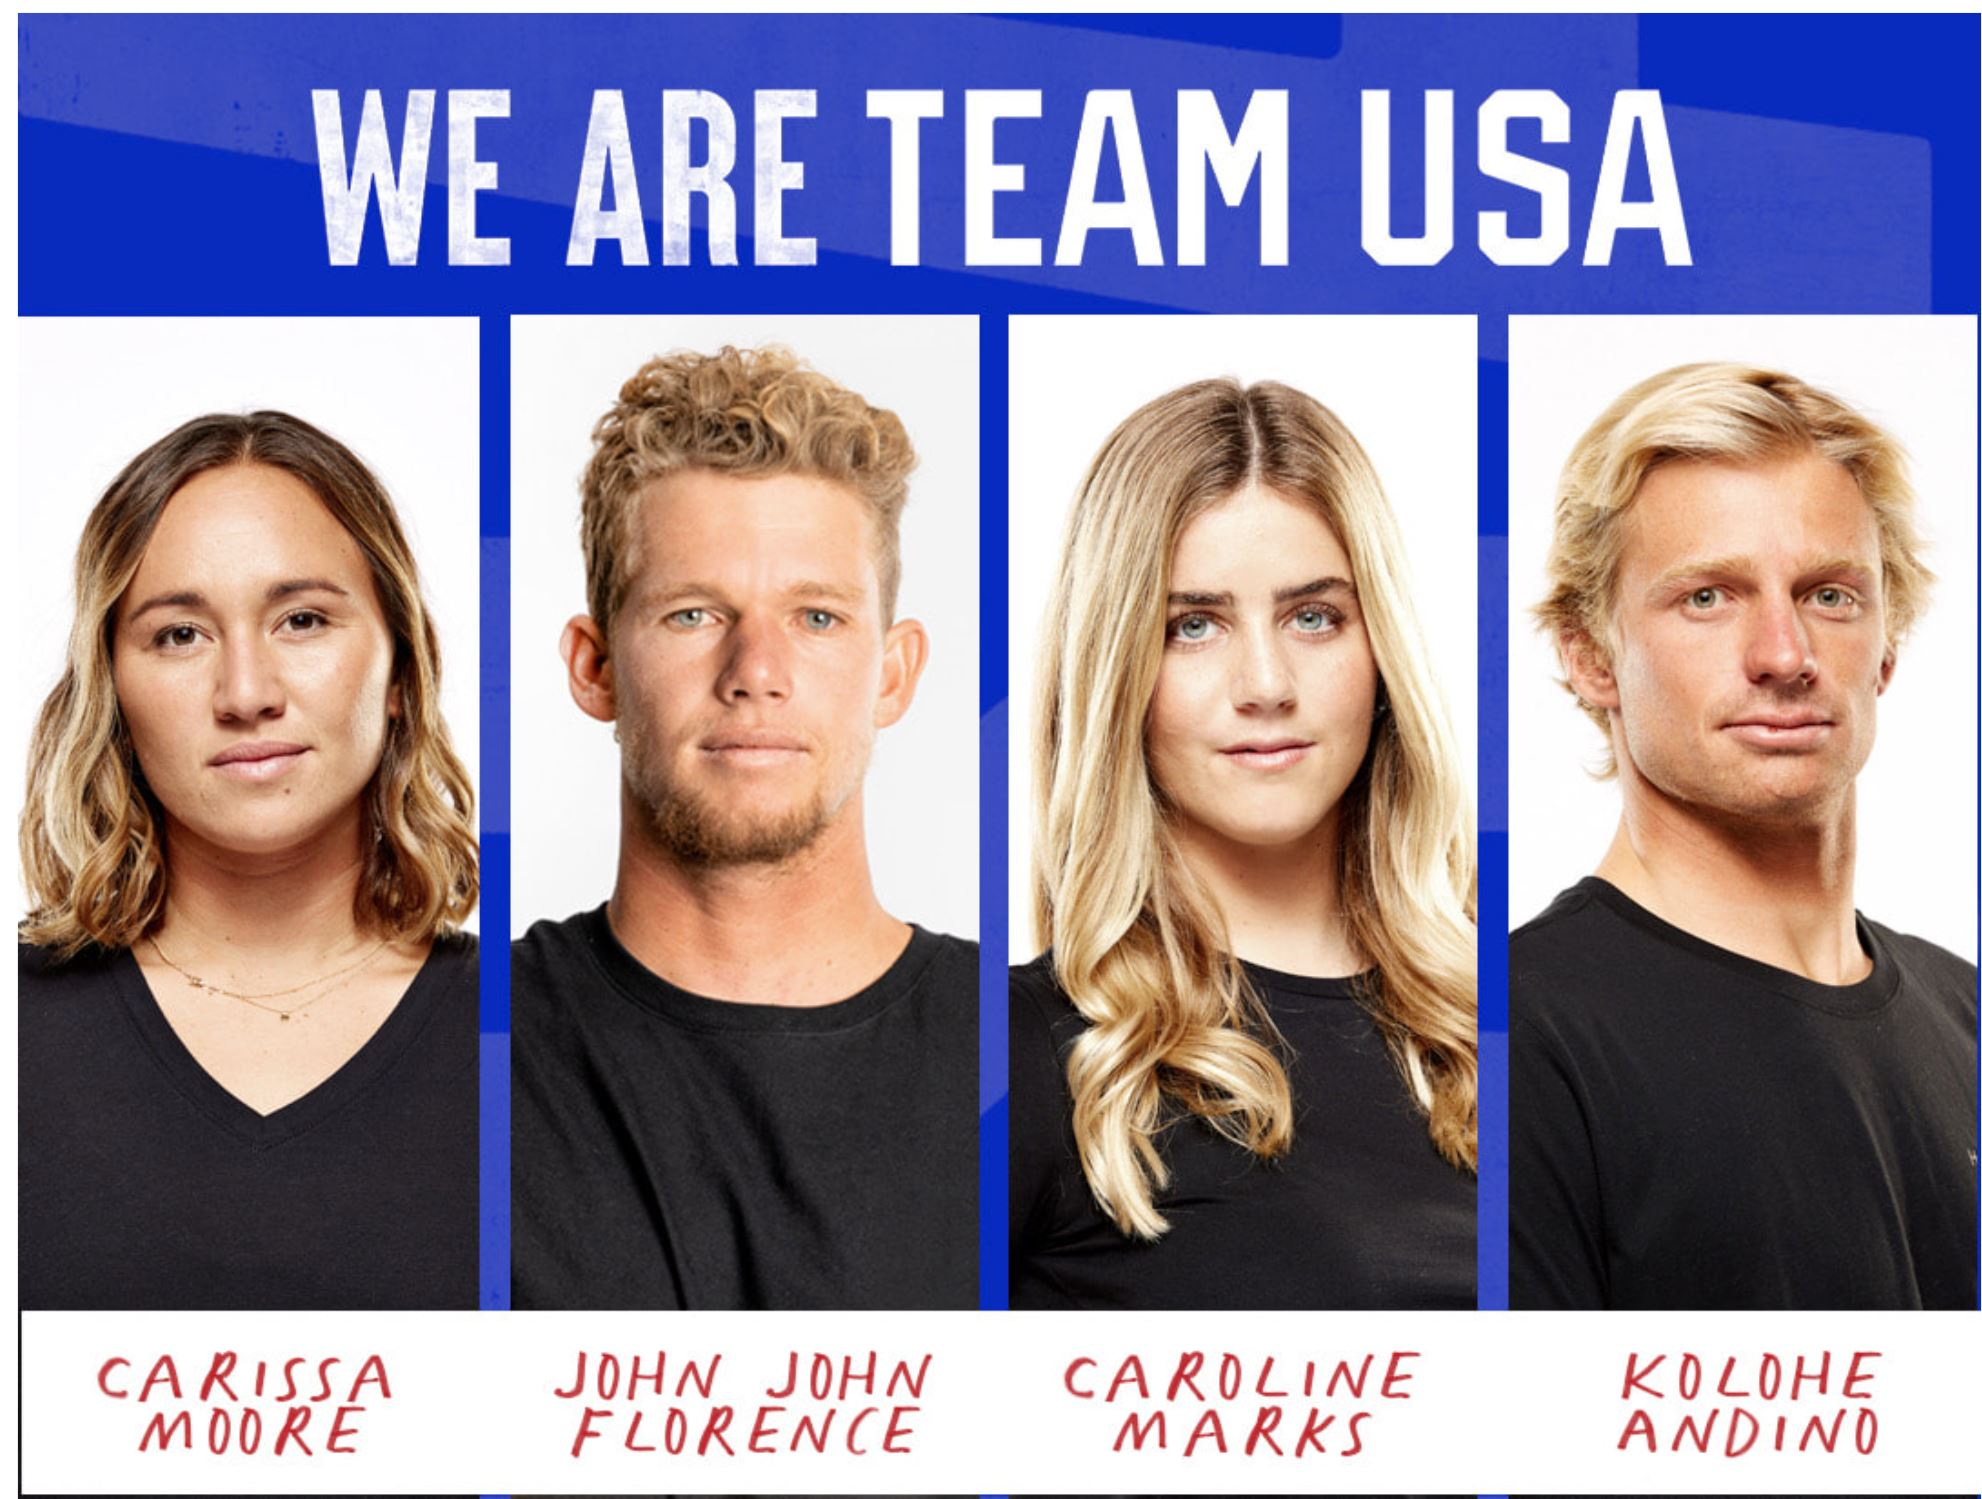 four side by side photos showing the four members of the 2020 Summer Olympic Surf Team